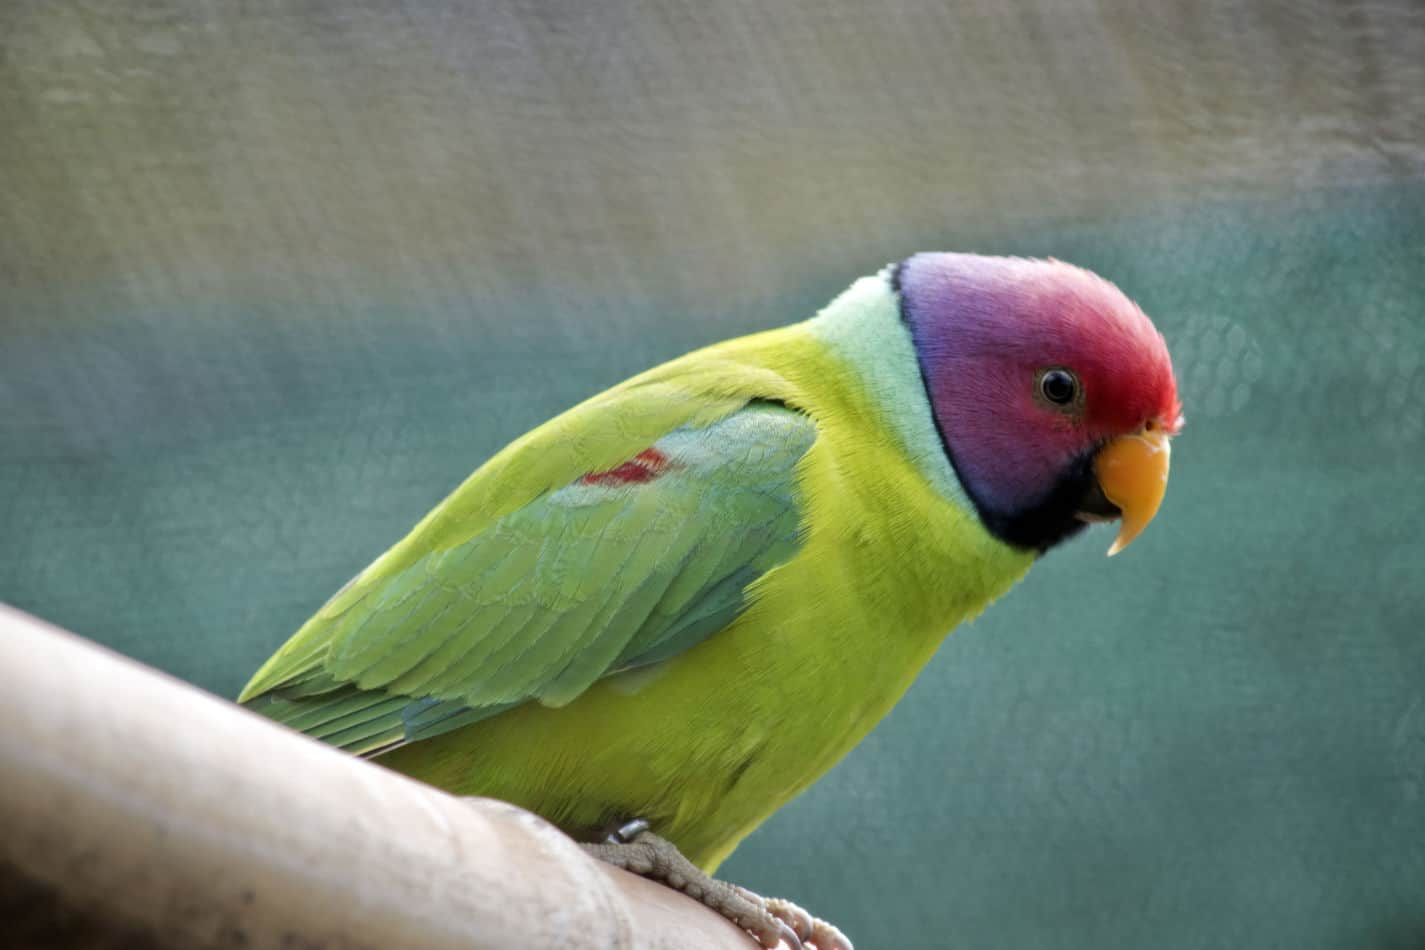 Plumheaded Parakeets: Pictures, Where to buy, and Temperament info